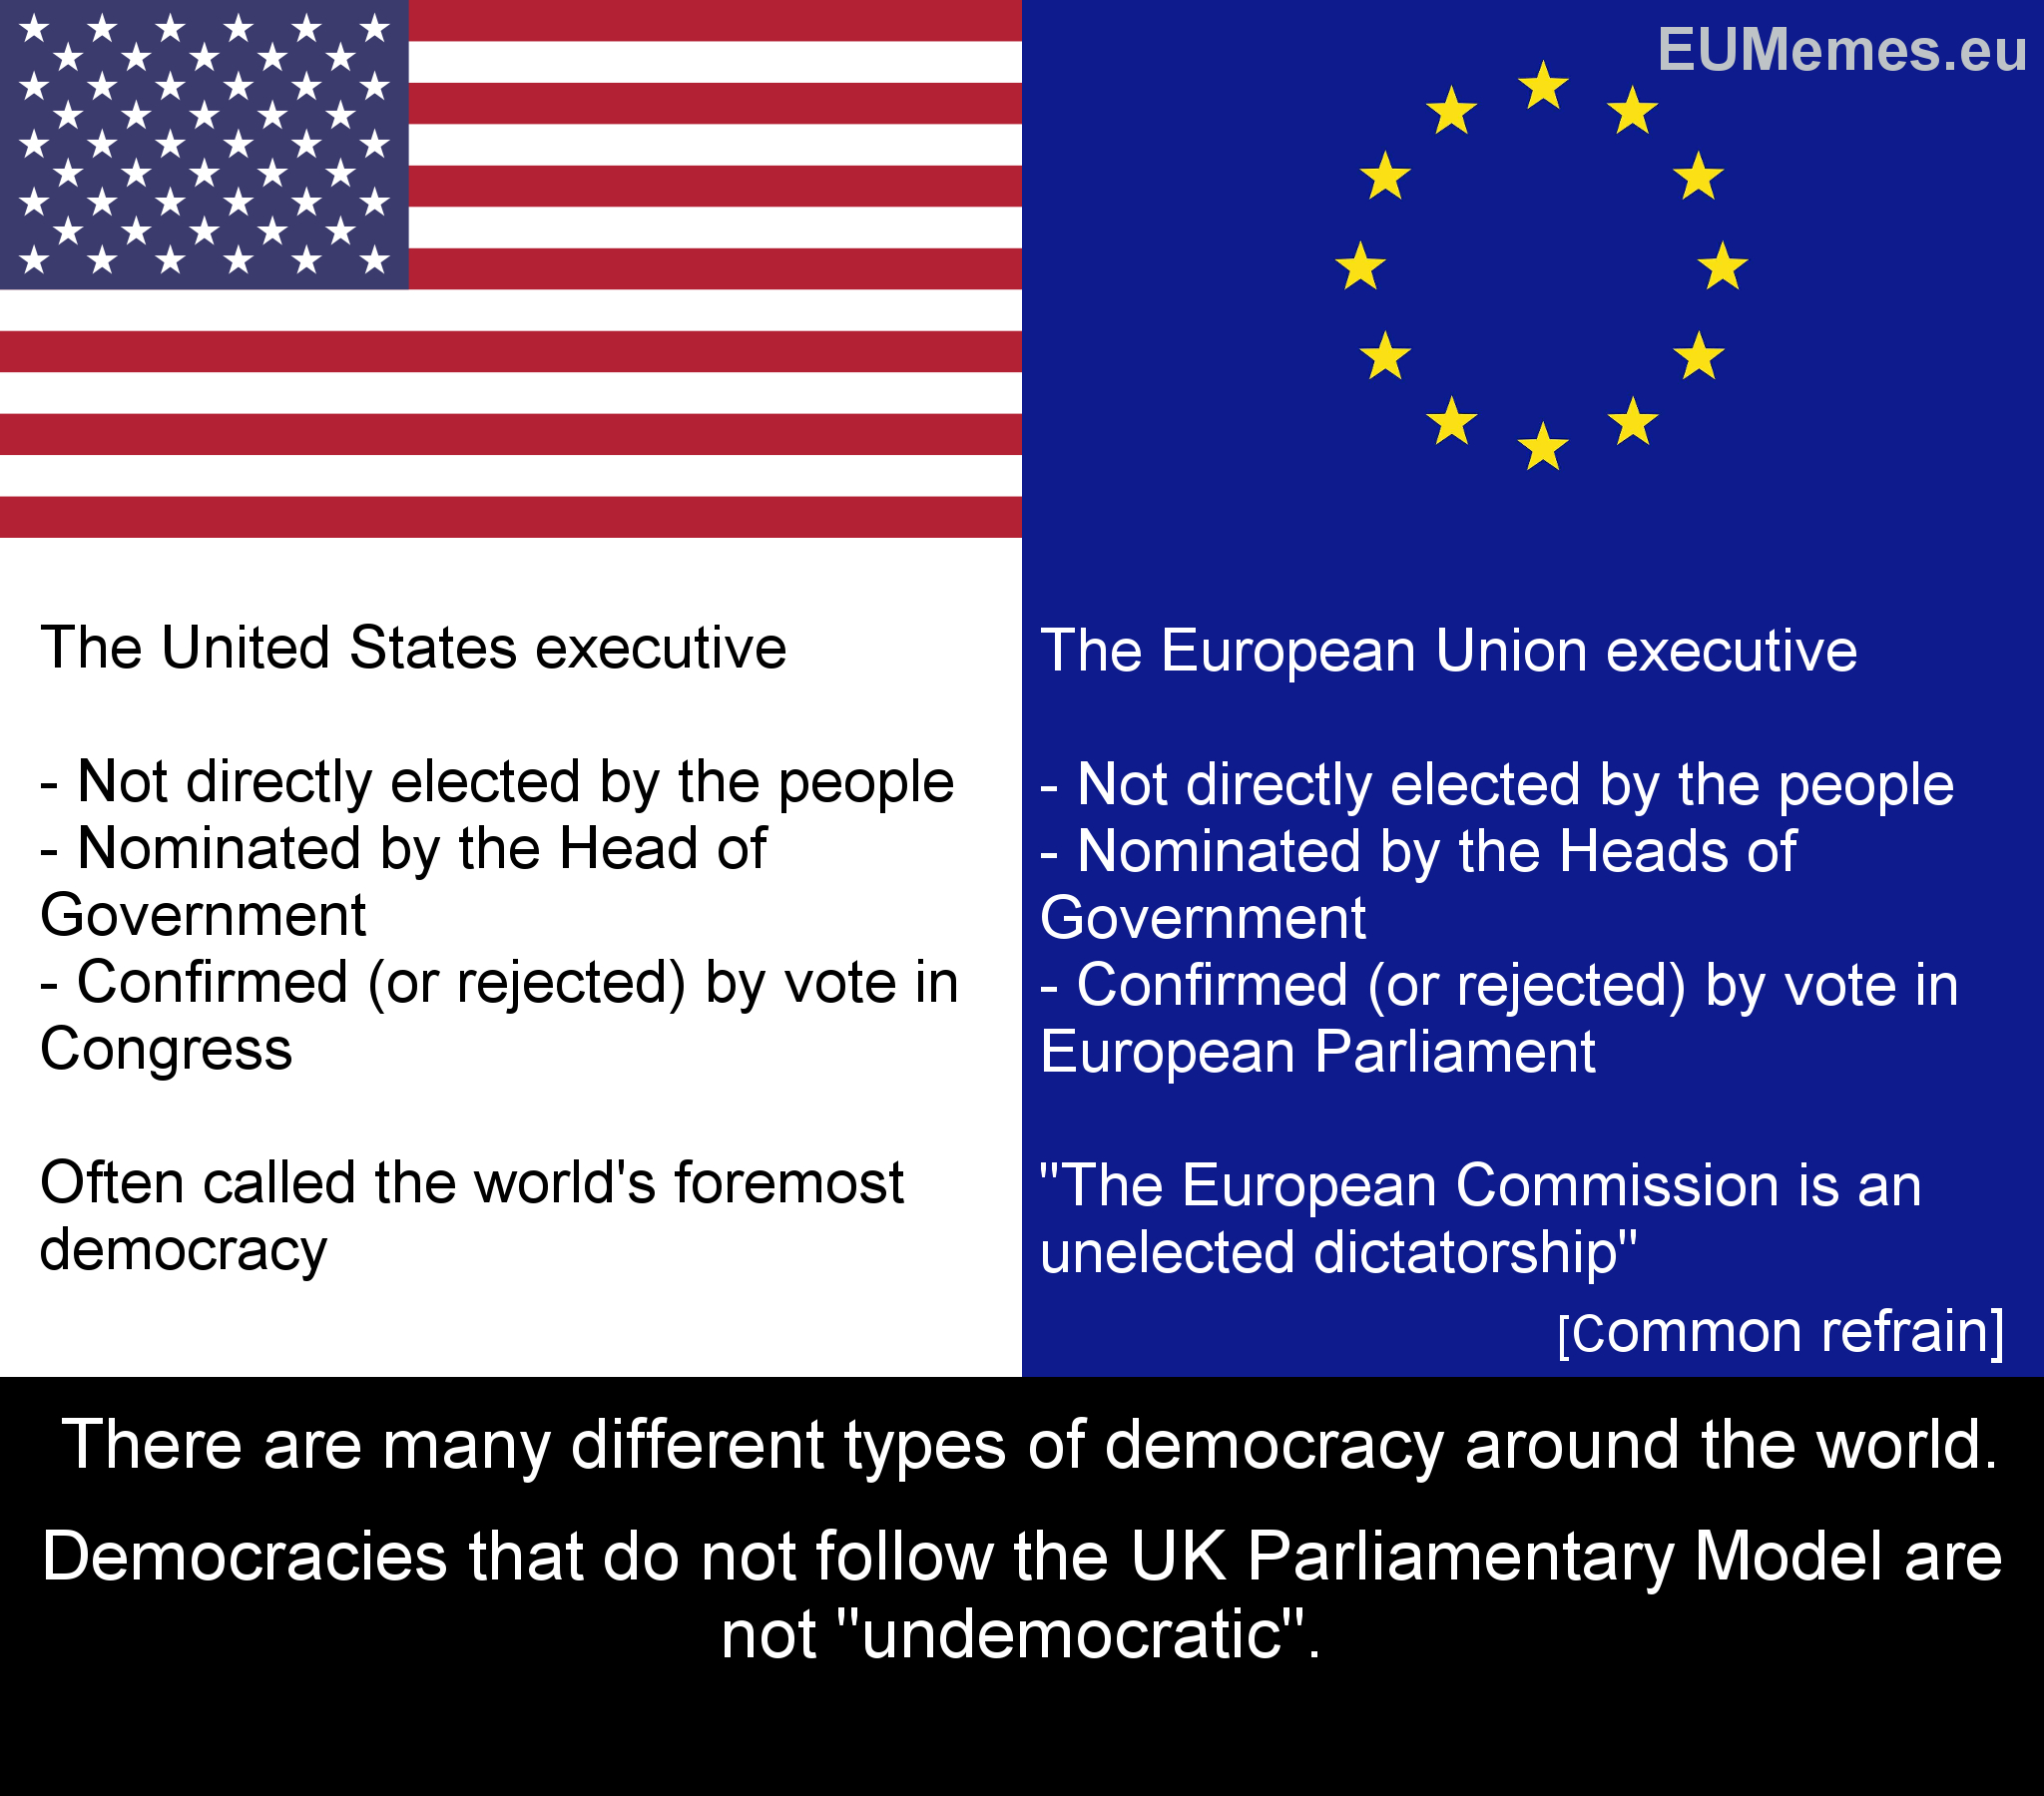 The European Commission is as democratic as the US executive